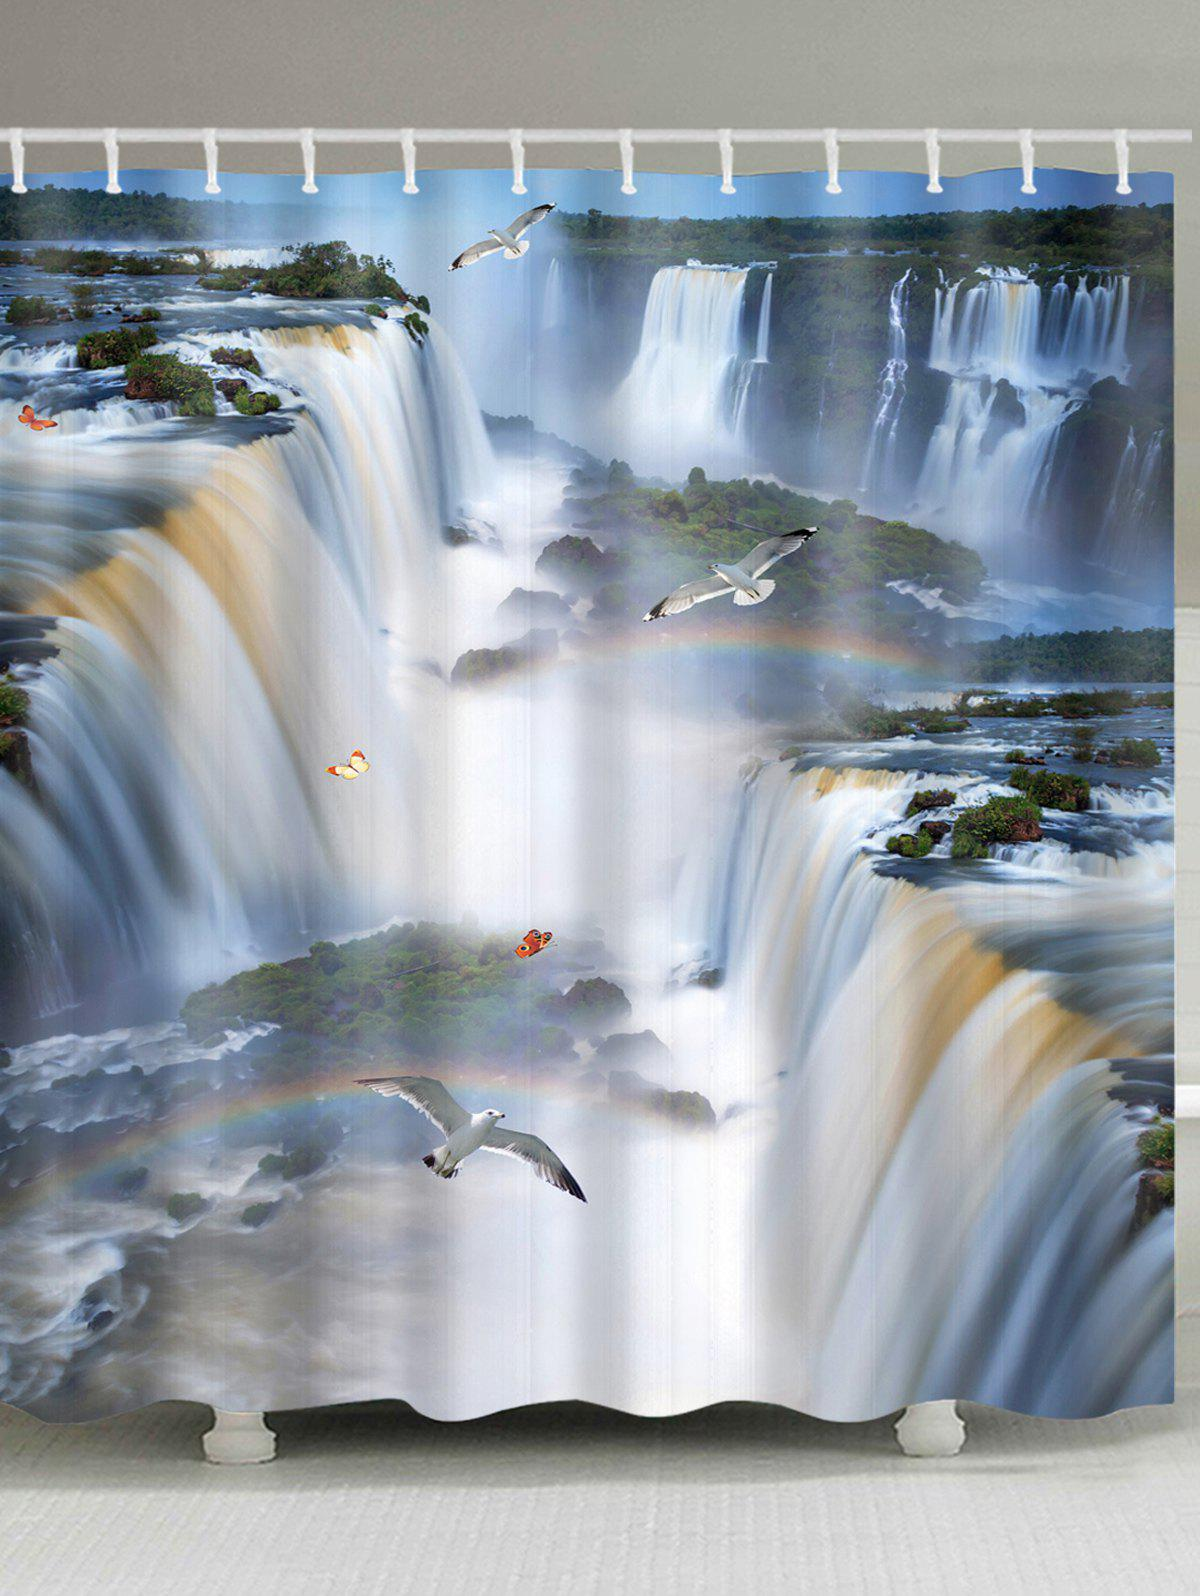 3D Natural Waterfalls Scenery Print Shower Curtain - multicolor A W71 INCH * L71 INCH